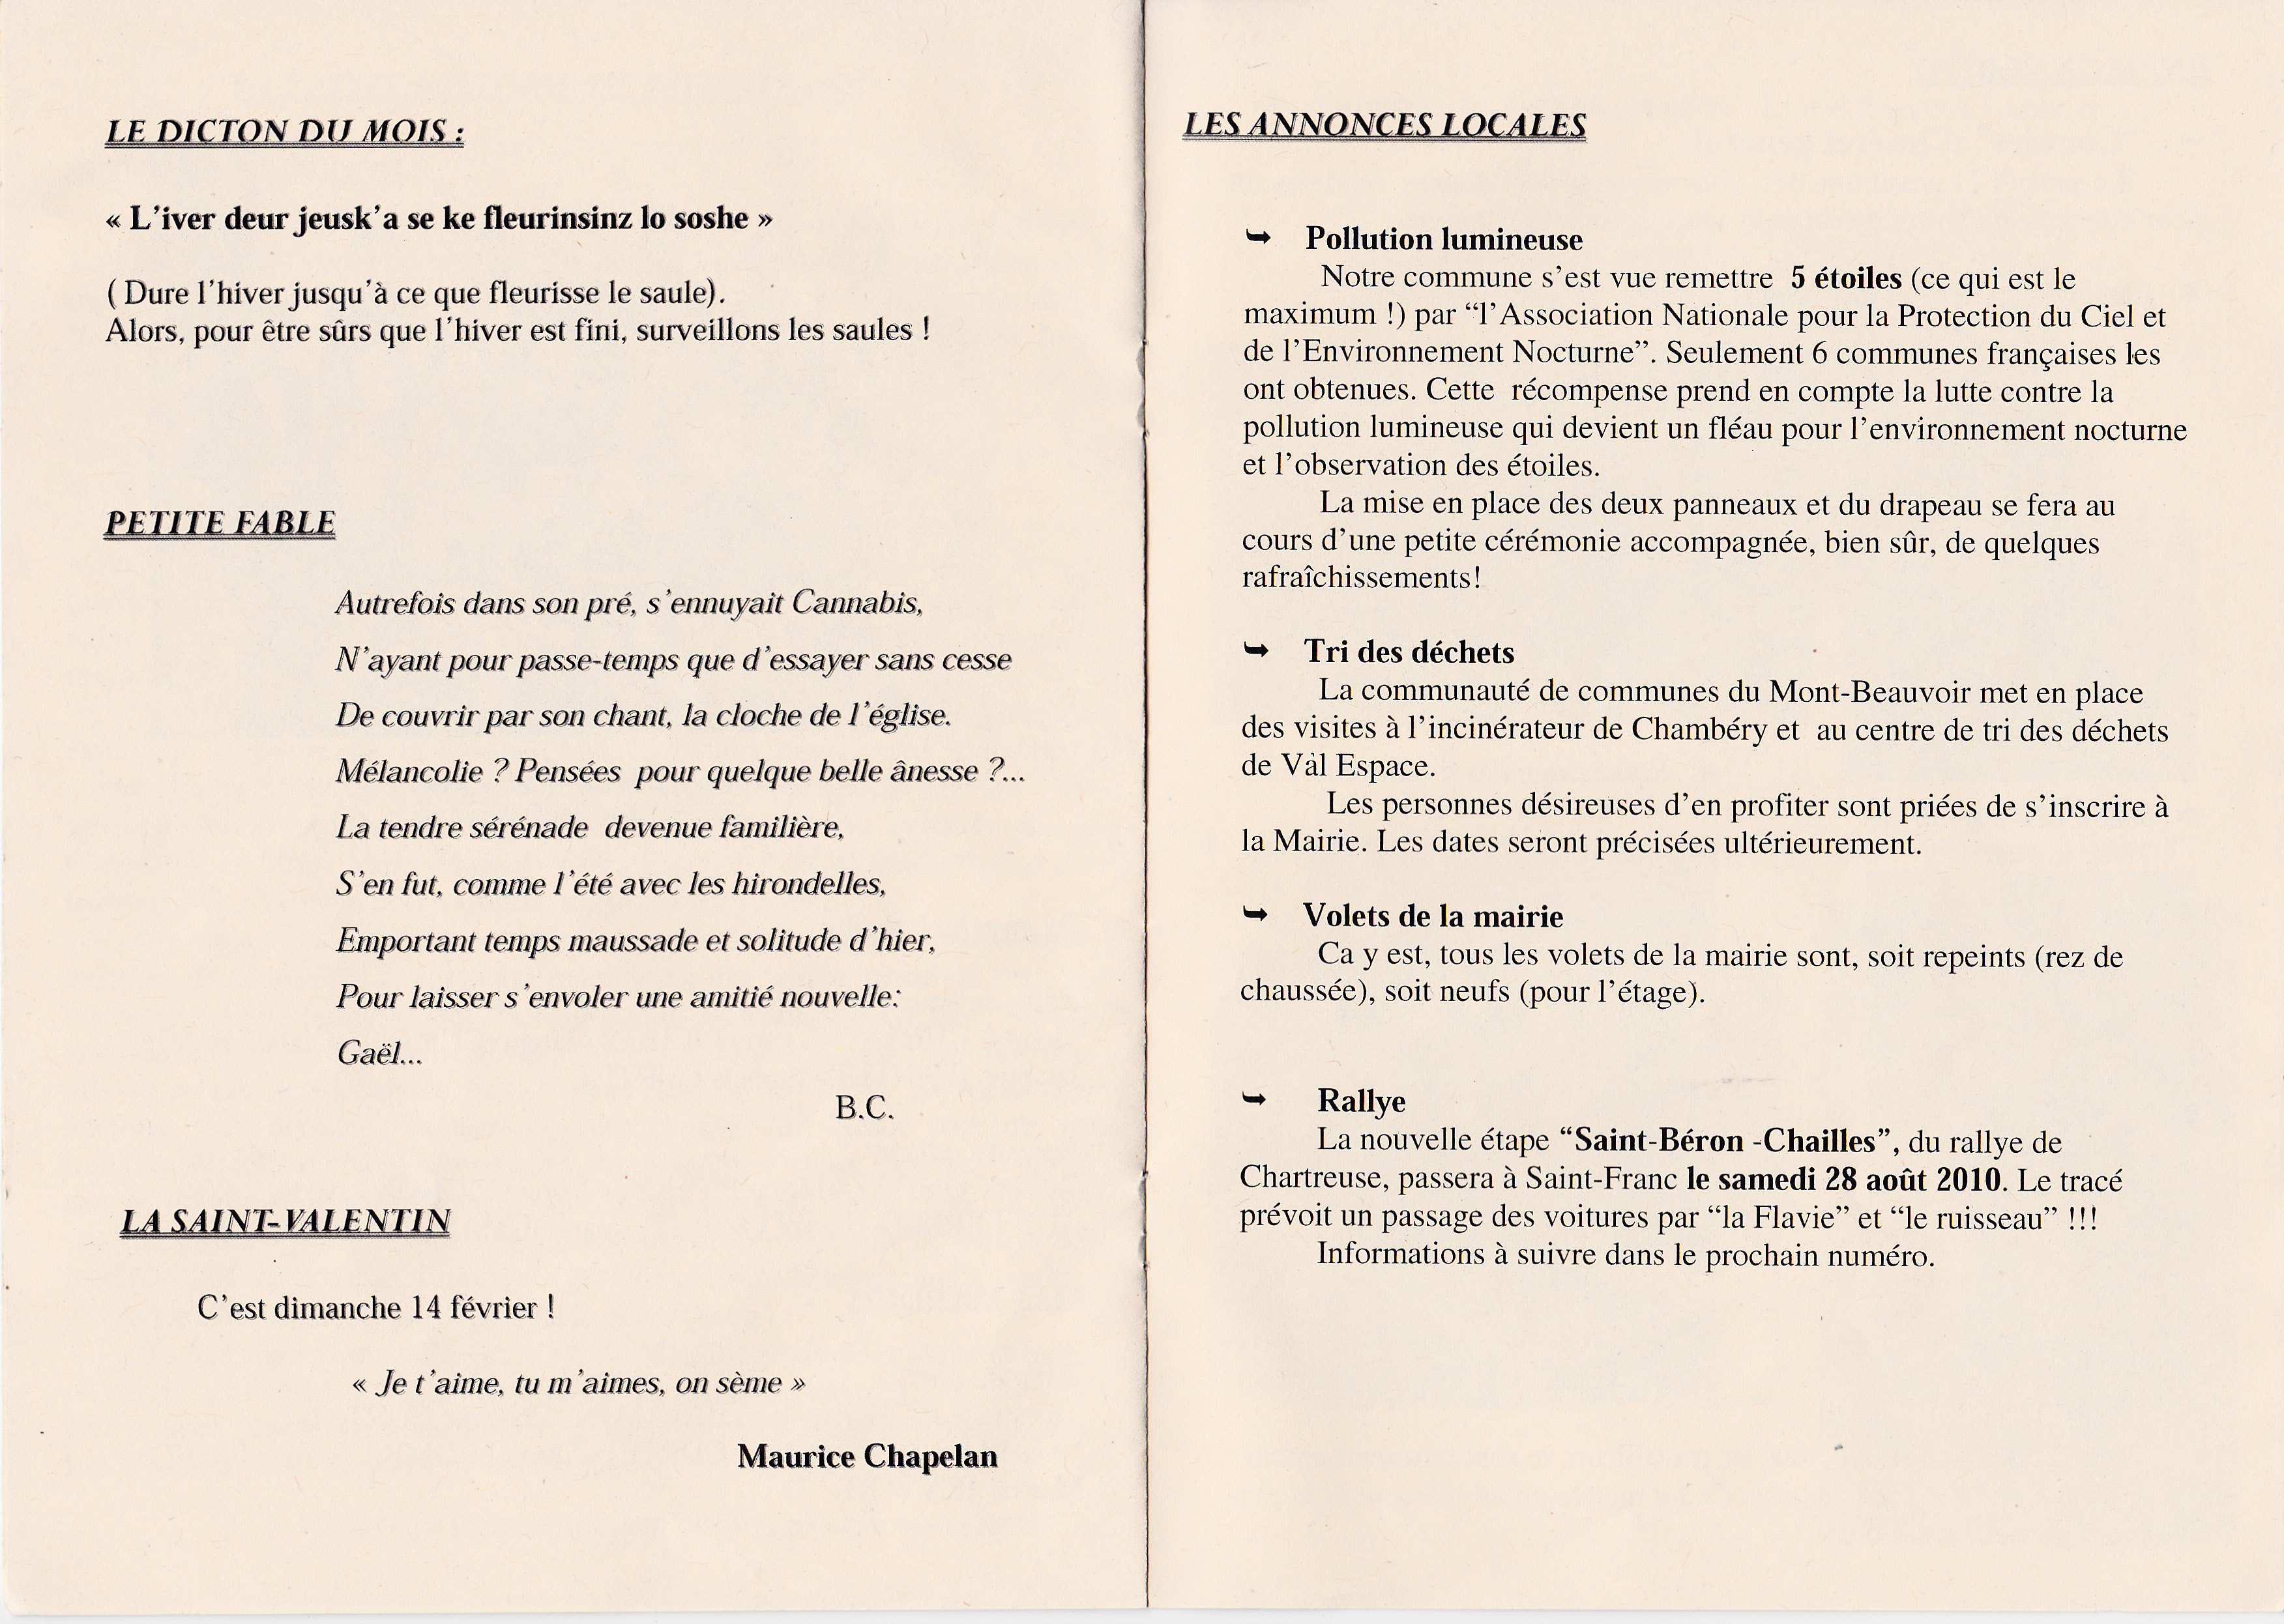 LPS n° 5 - Pages 10 & 11